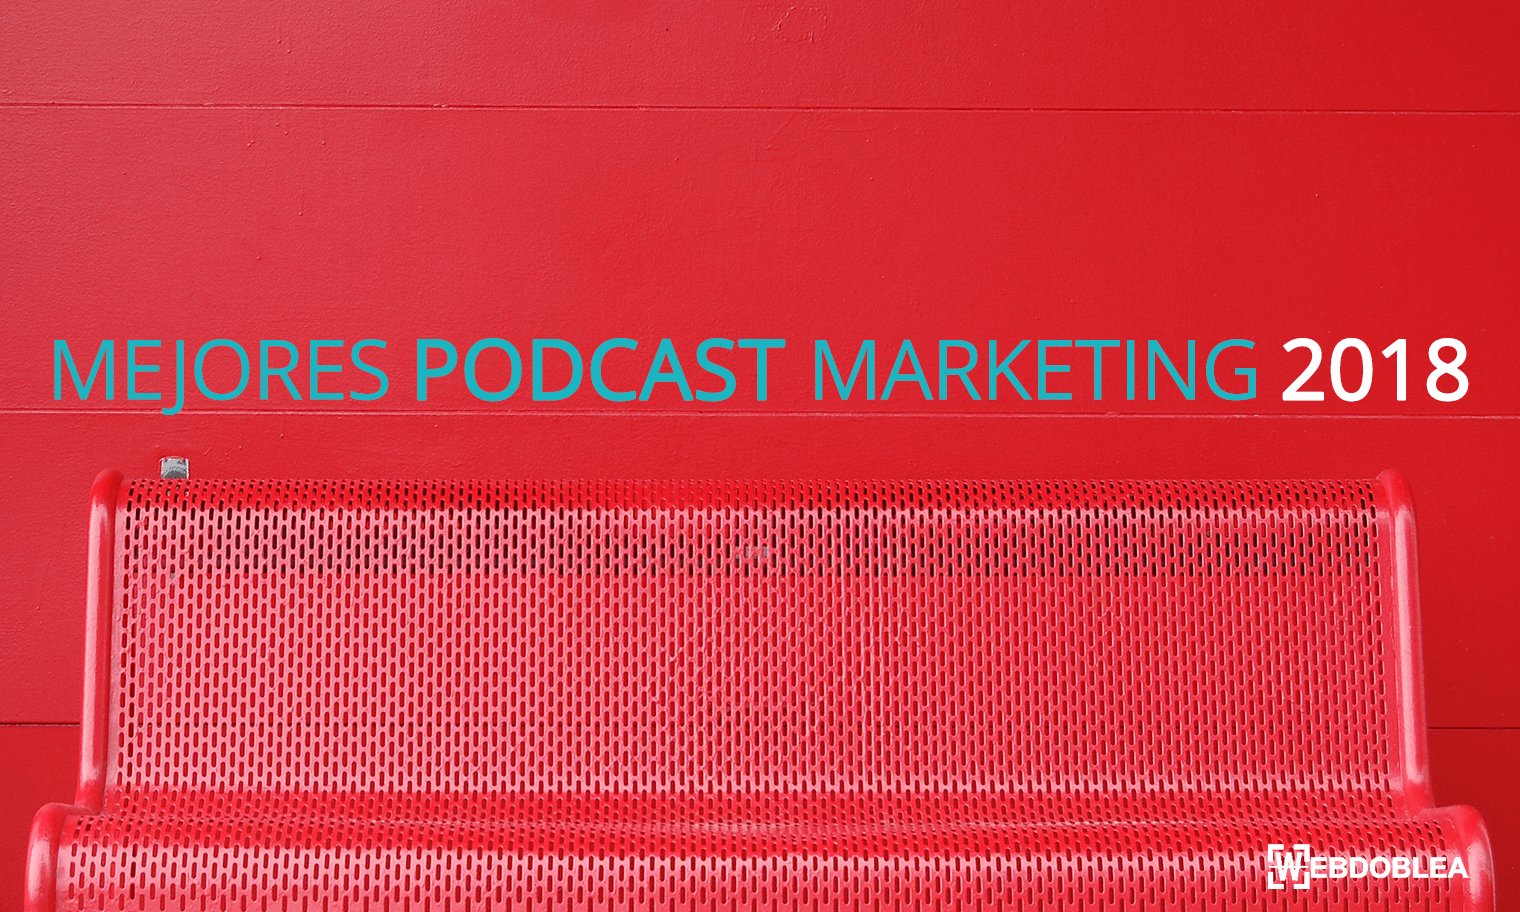 mejores_podcast_marketing_digital_español_2018